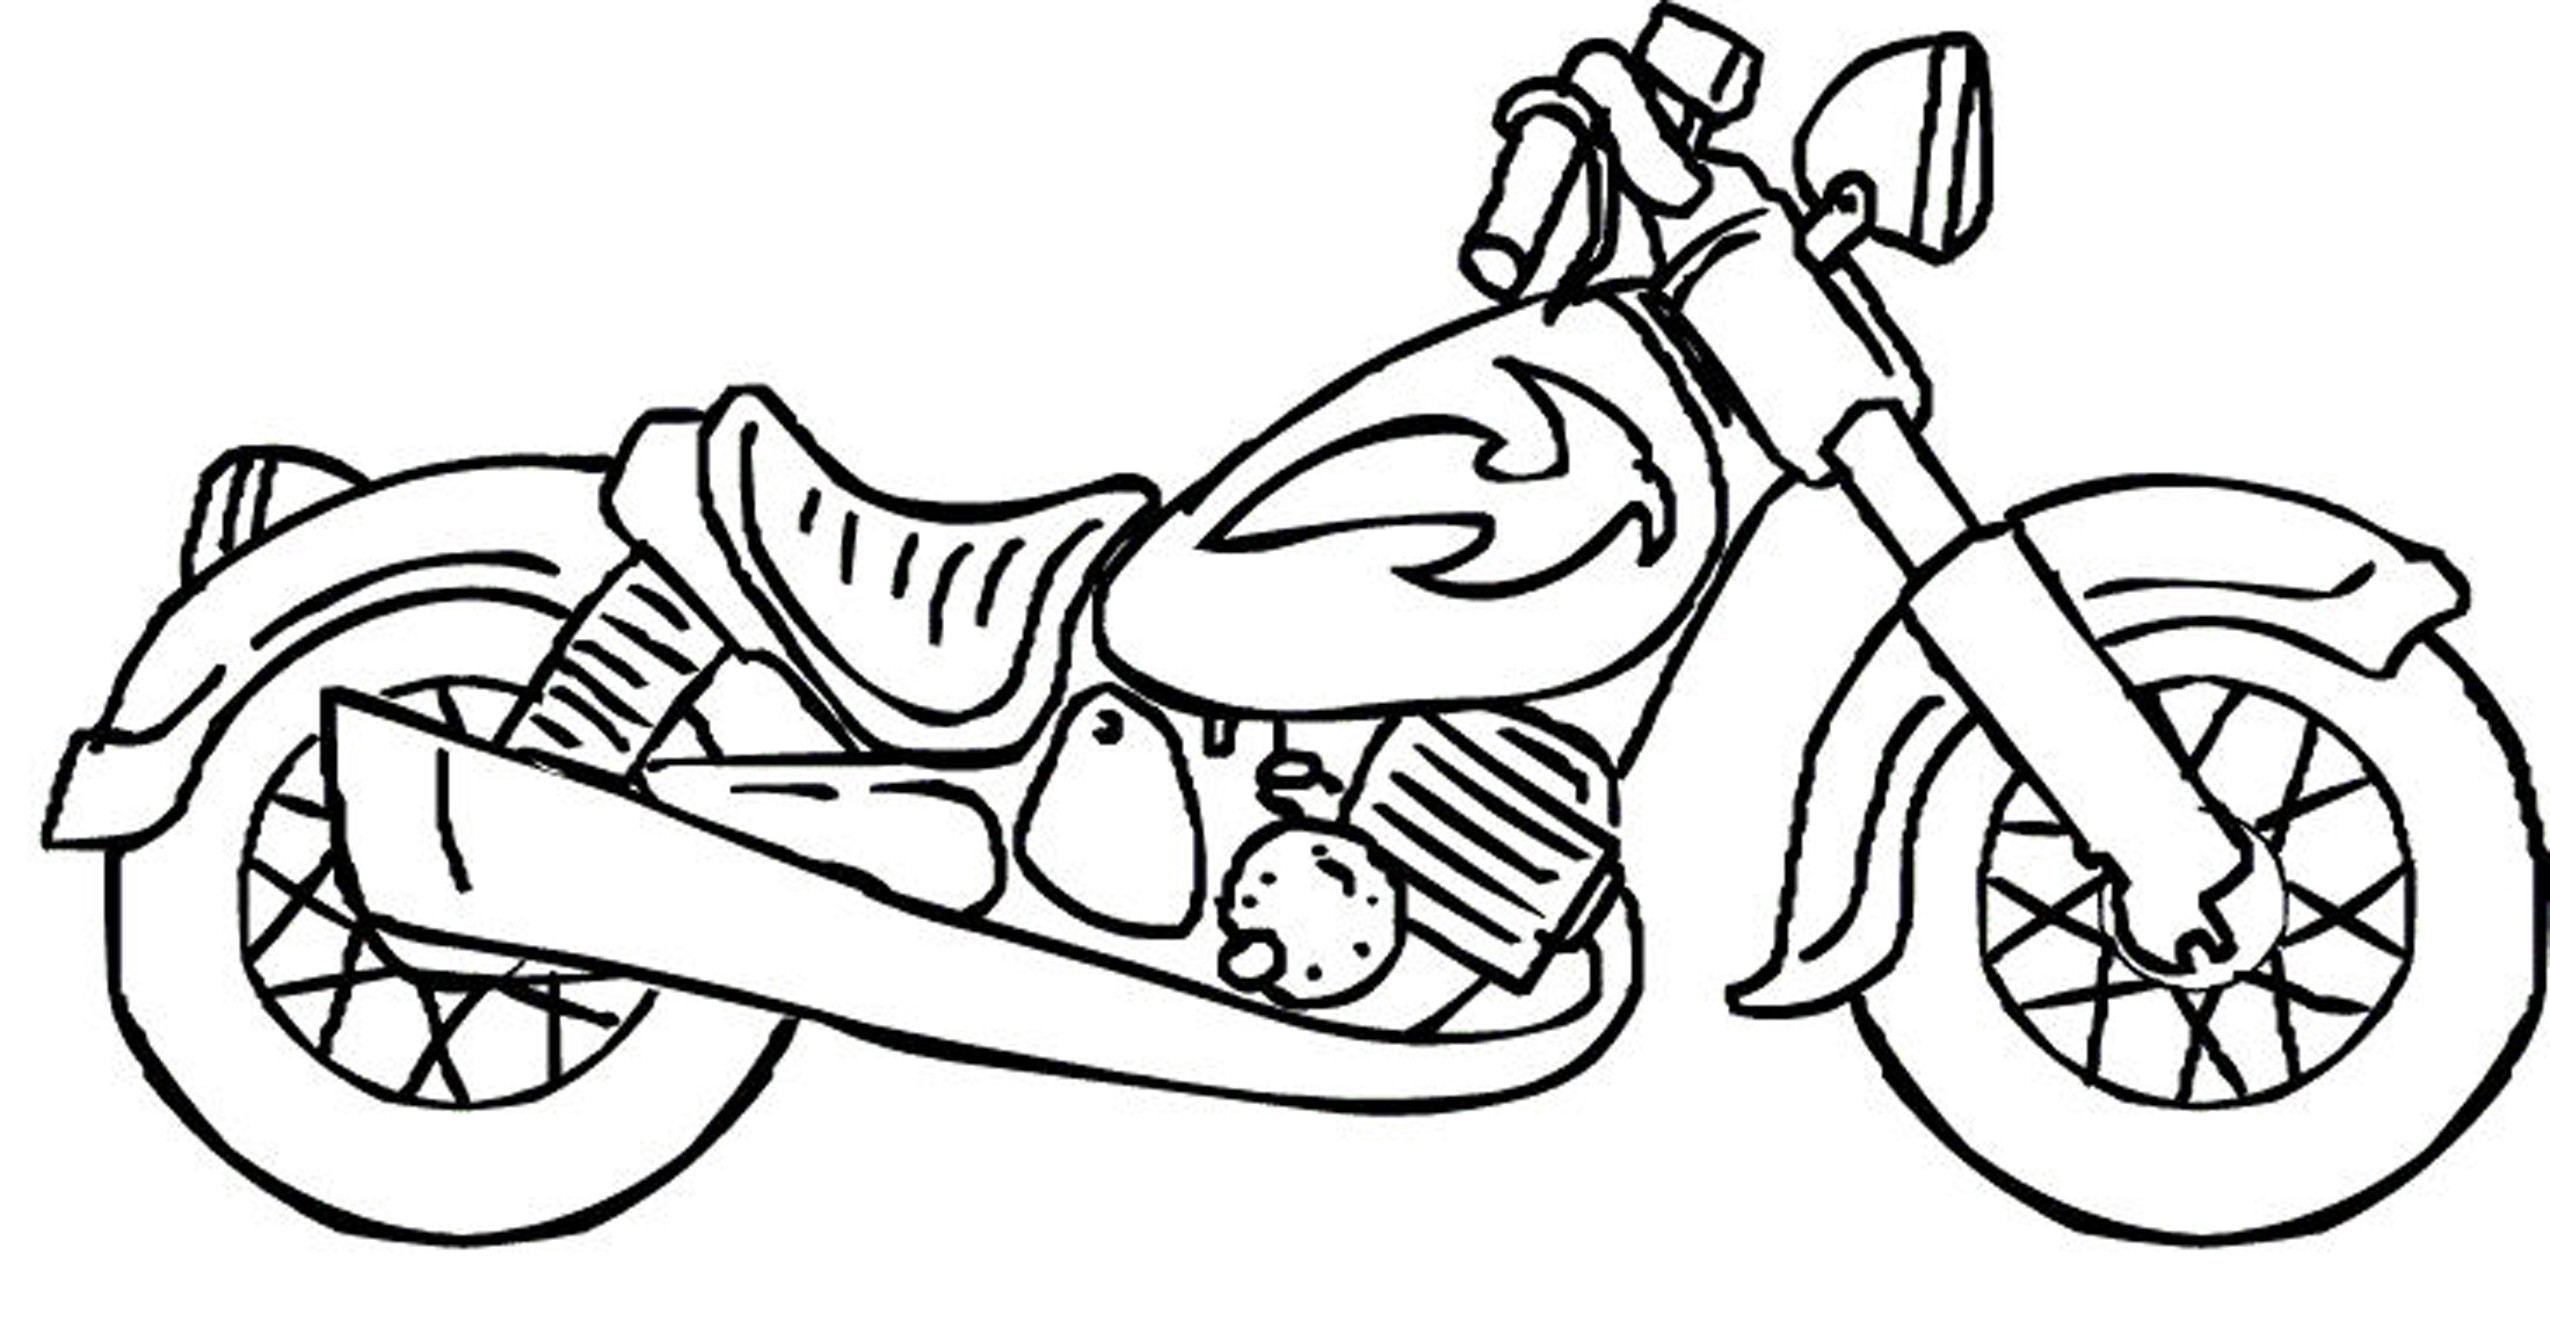 Motorcycle Coloring Pages For Kids  Motorcycle coloring pages for kids ColoringStar